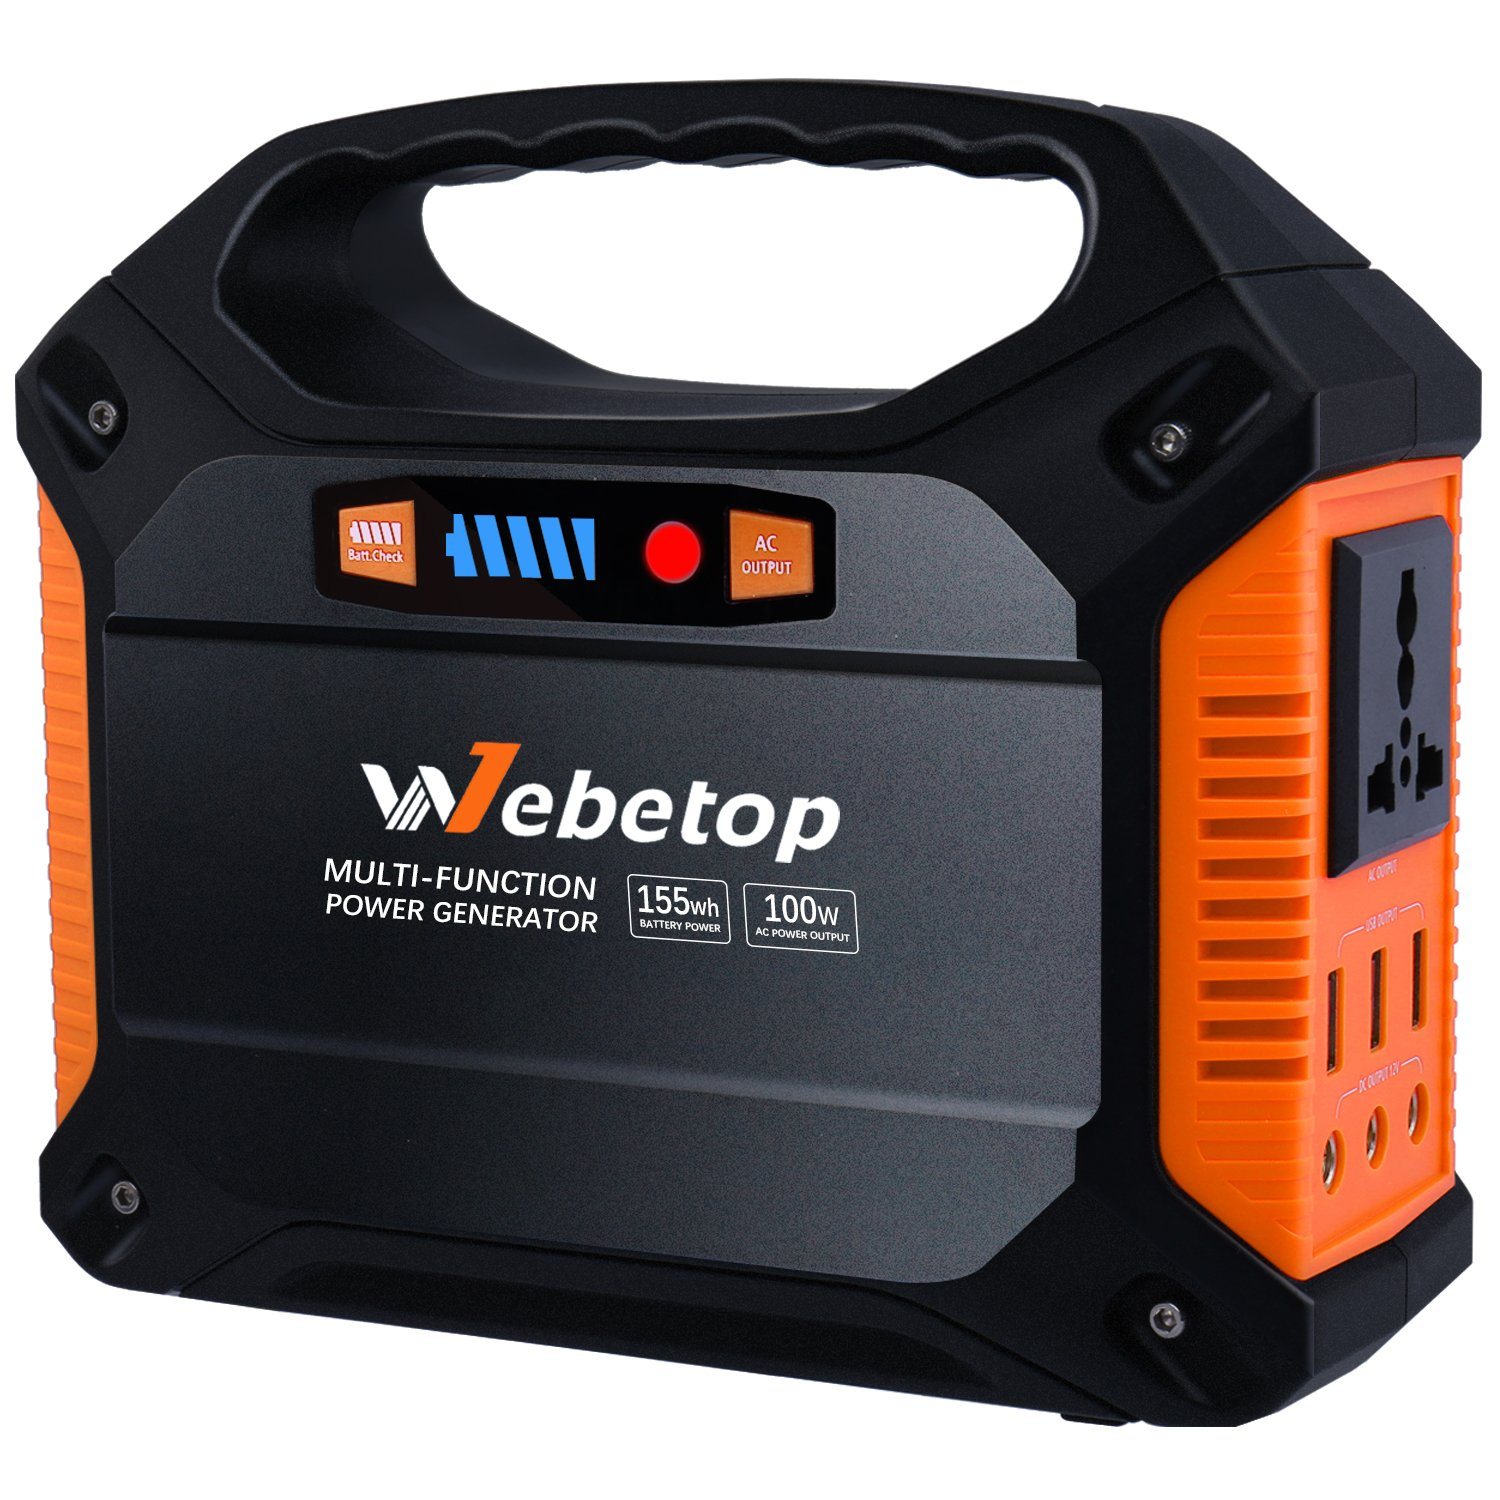 Webetop 155Wh 42000mAh Portable Generator Inverter Battery 100W Camping Emergency Home Use UPS Power Source Charged by Solar Panel Wall Car with 110V AC Outlet,3 DC 12V,3 USB Port